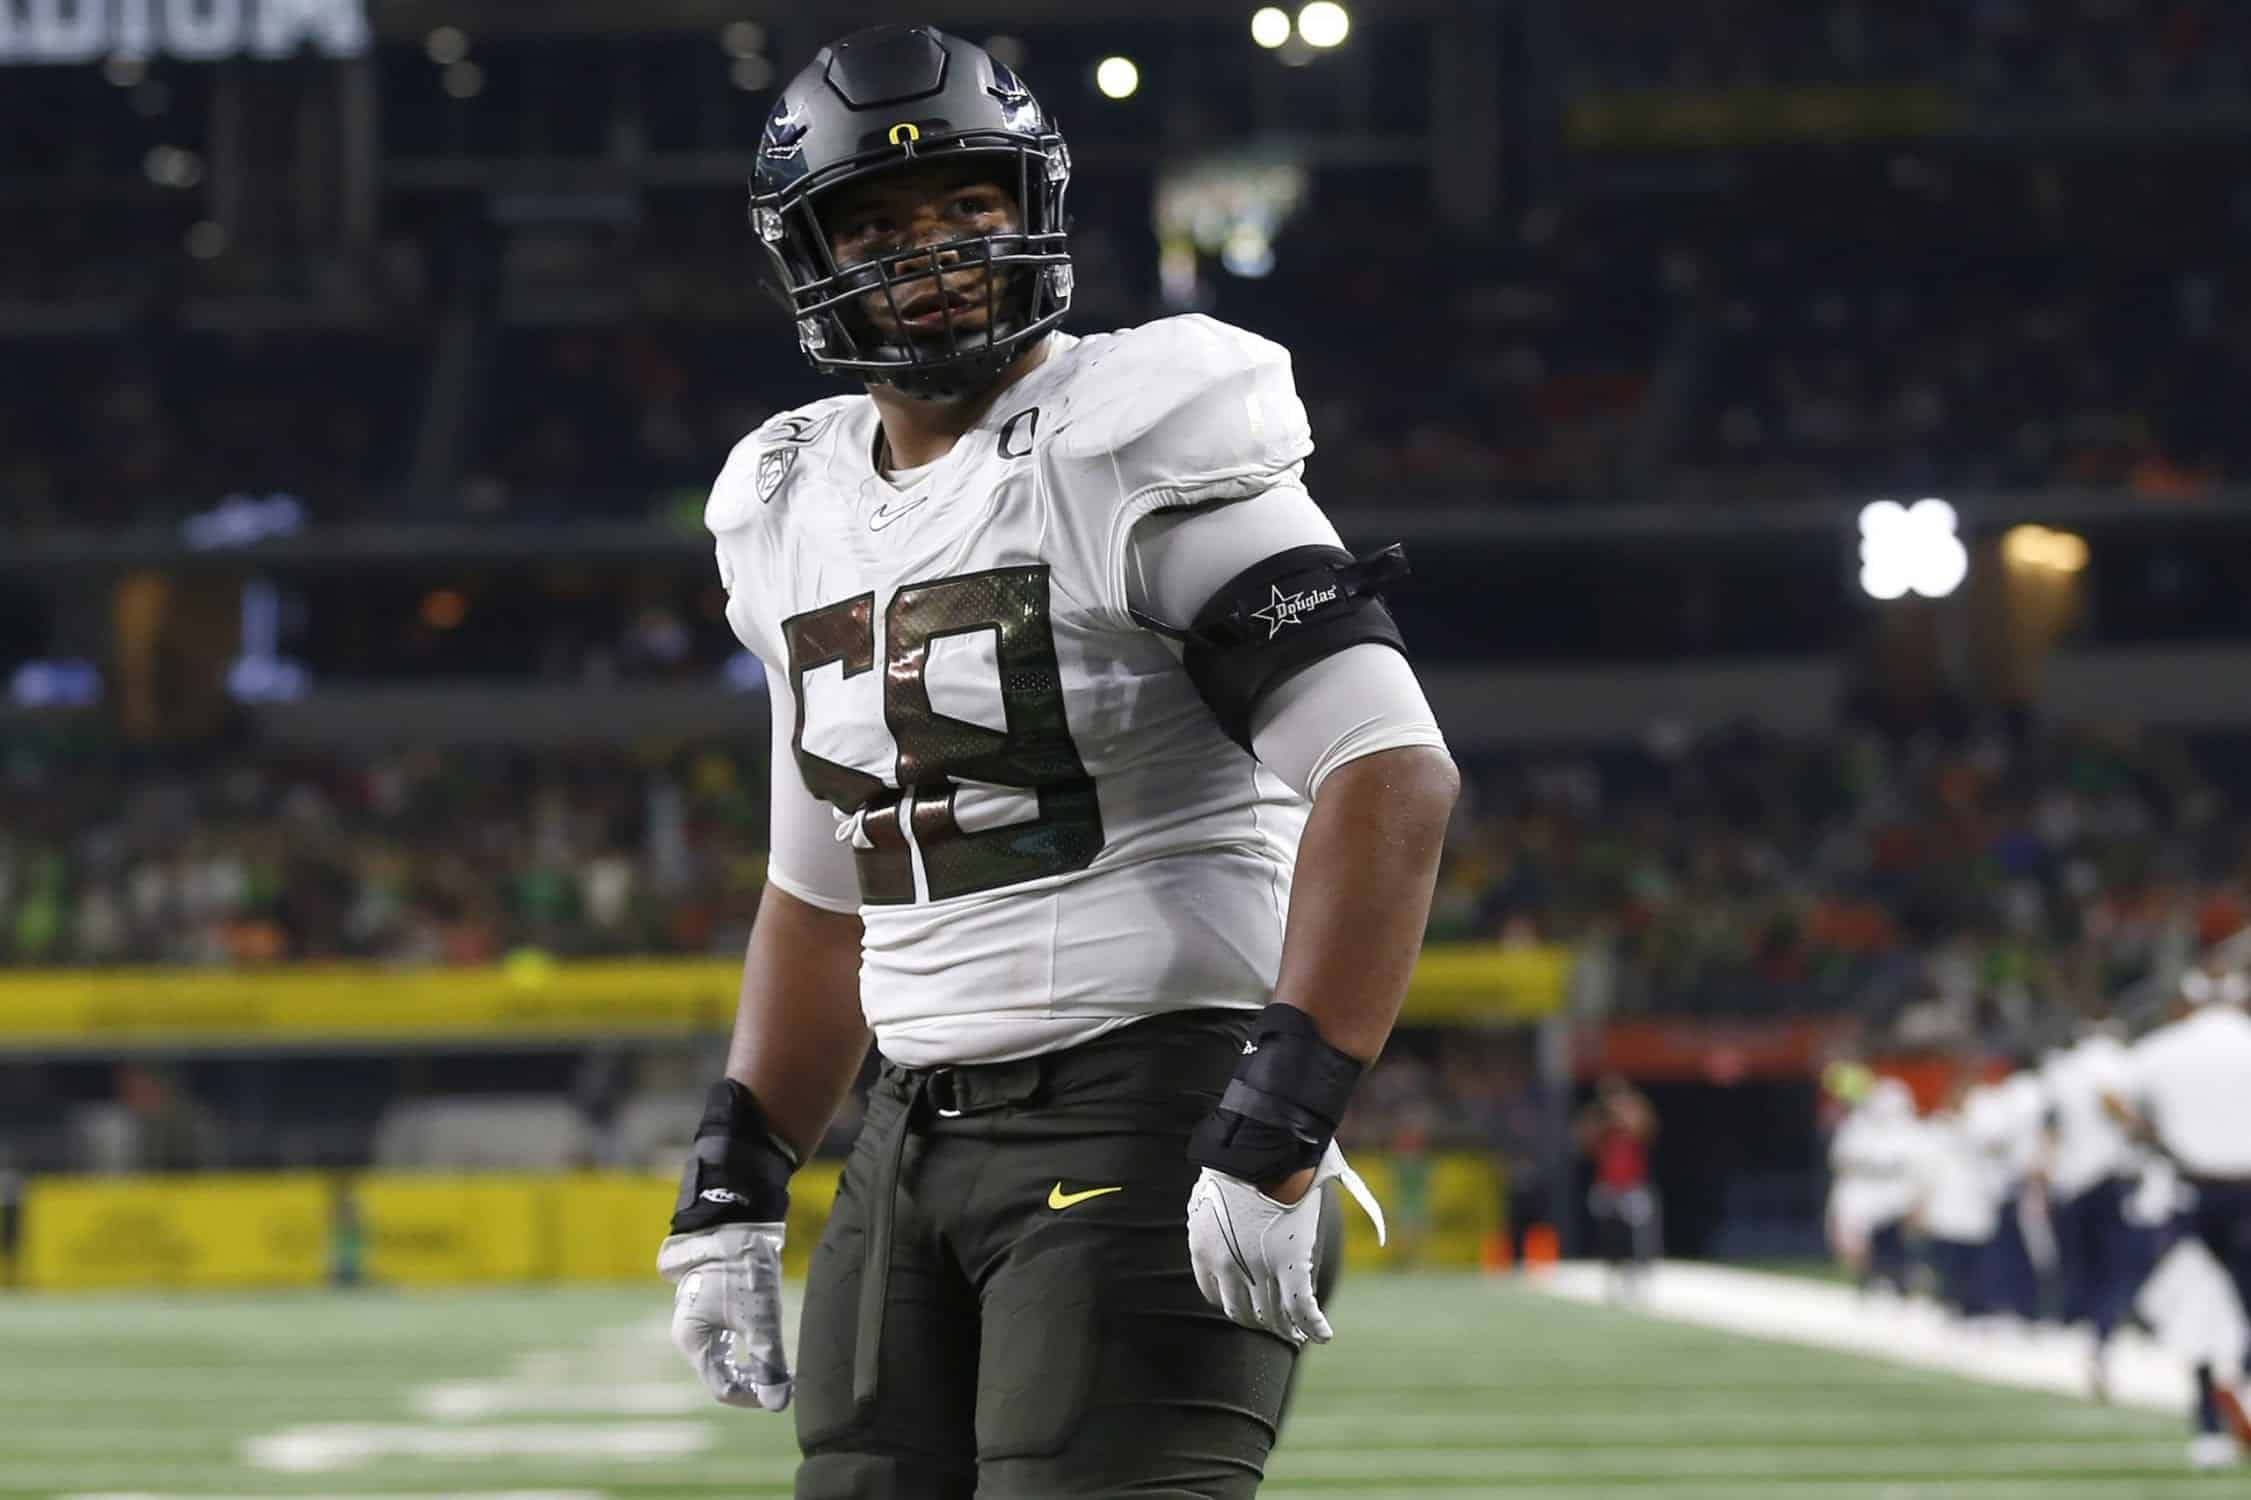 Penei Sewell leads top-heavy group of offensive tackles in the 2021 NFL Draft